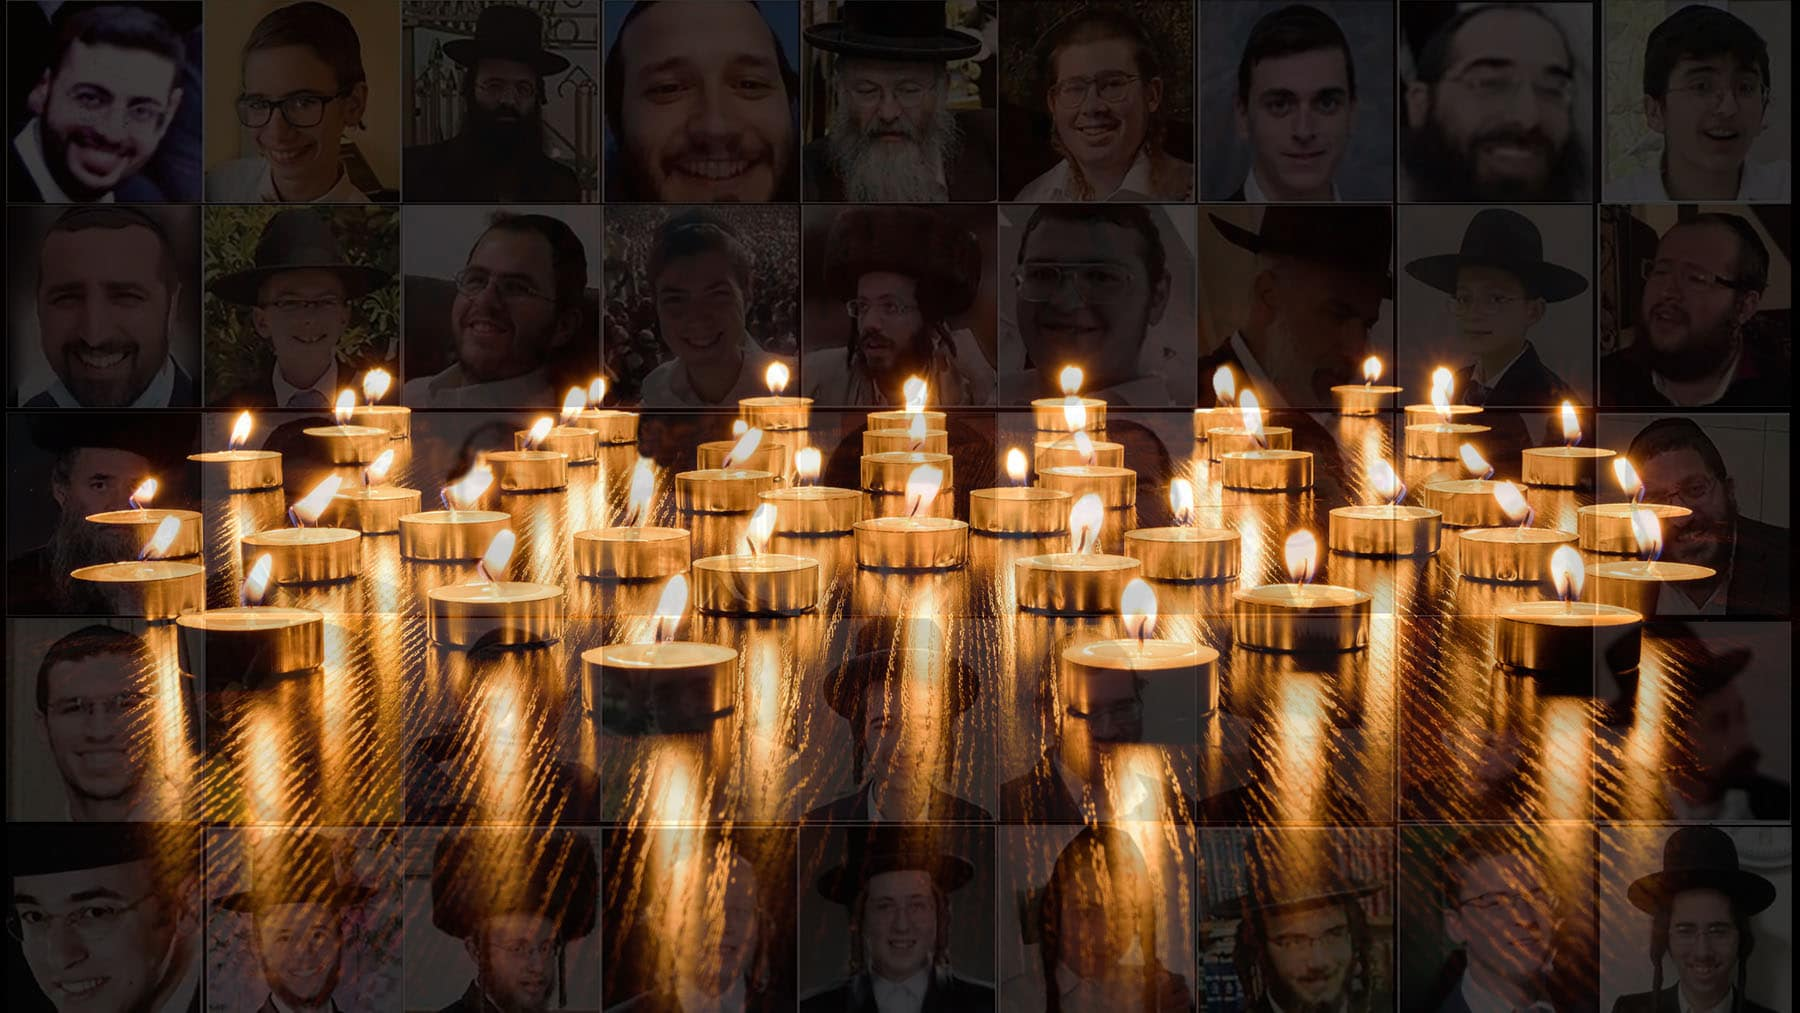 https jewishjournal com commentary columnist editors note 336384 lighting candles for the meron 45